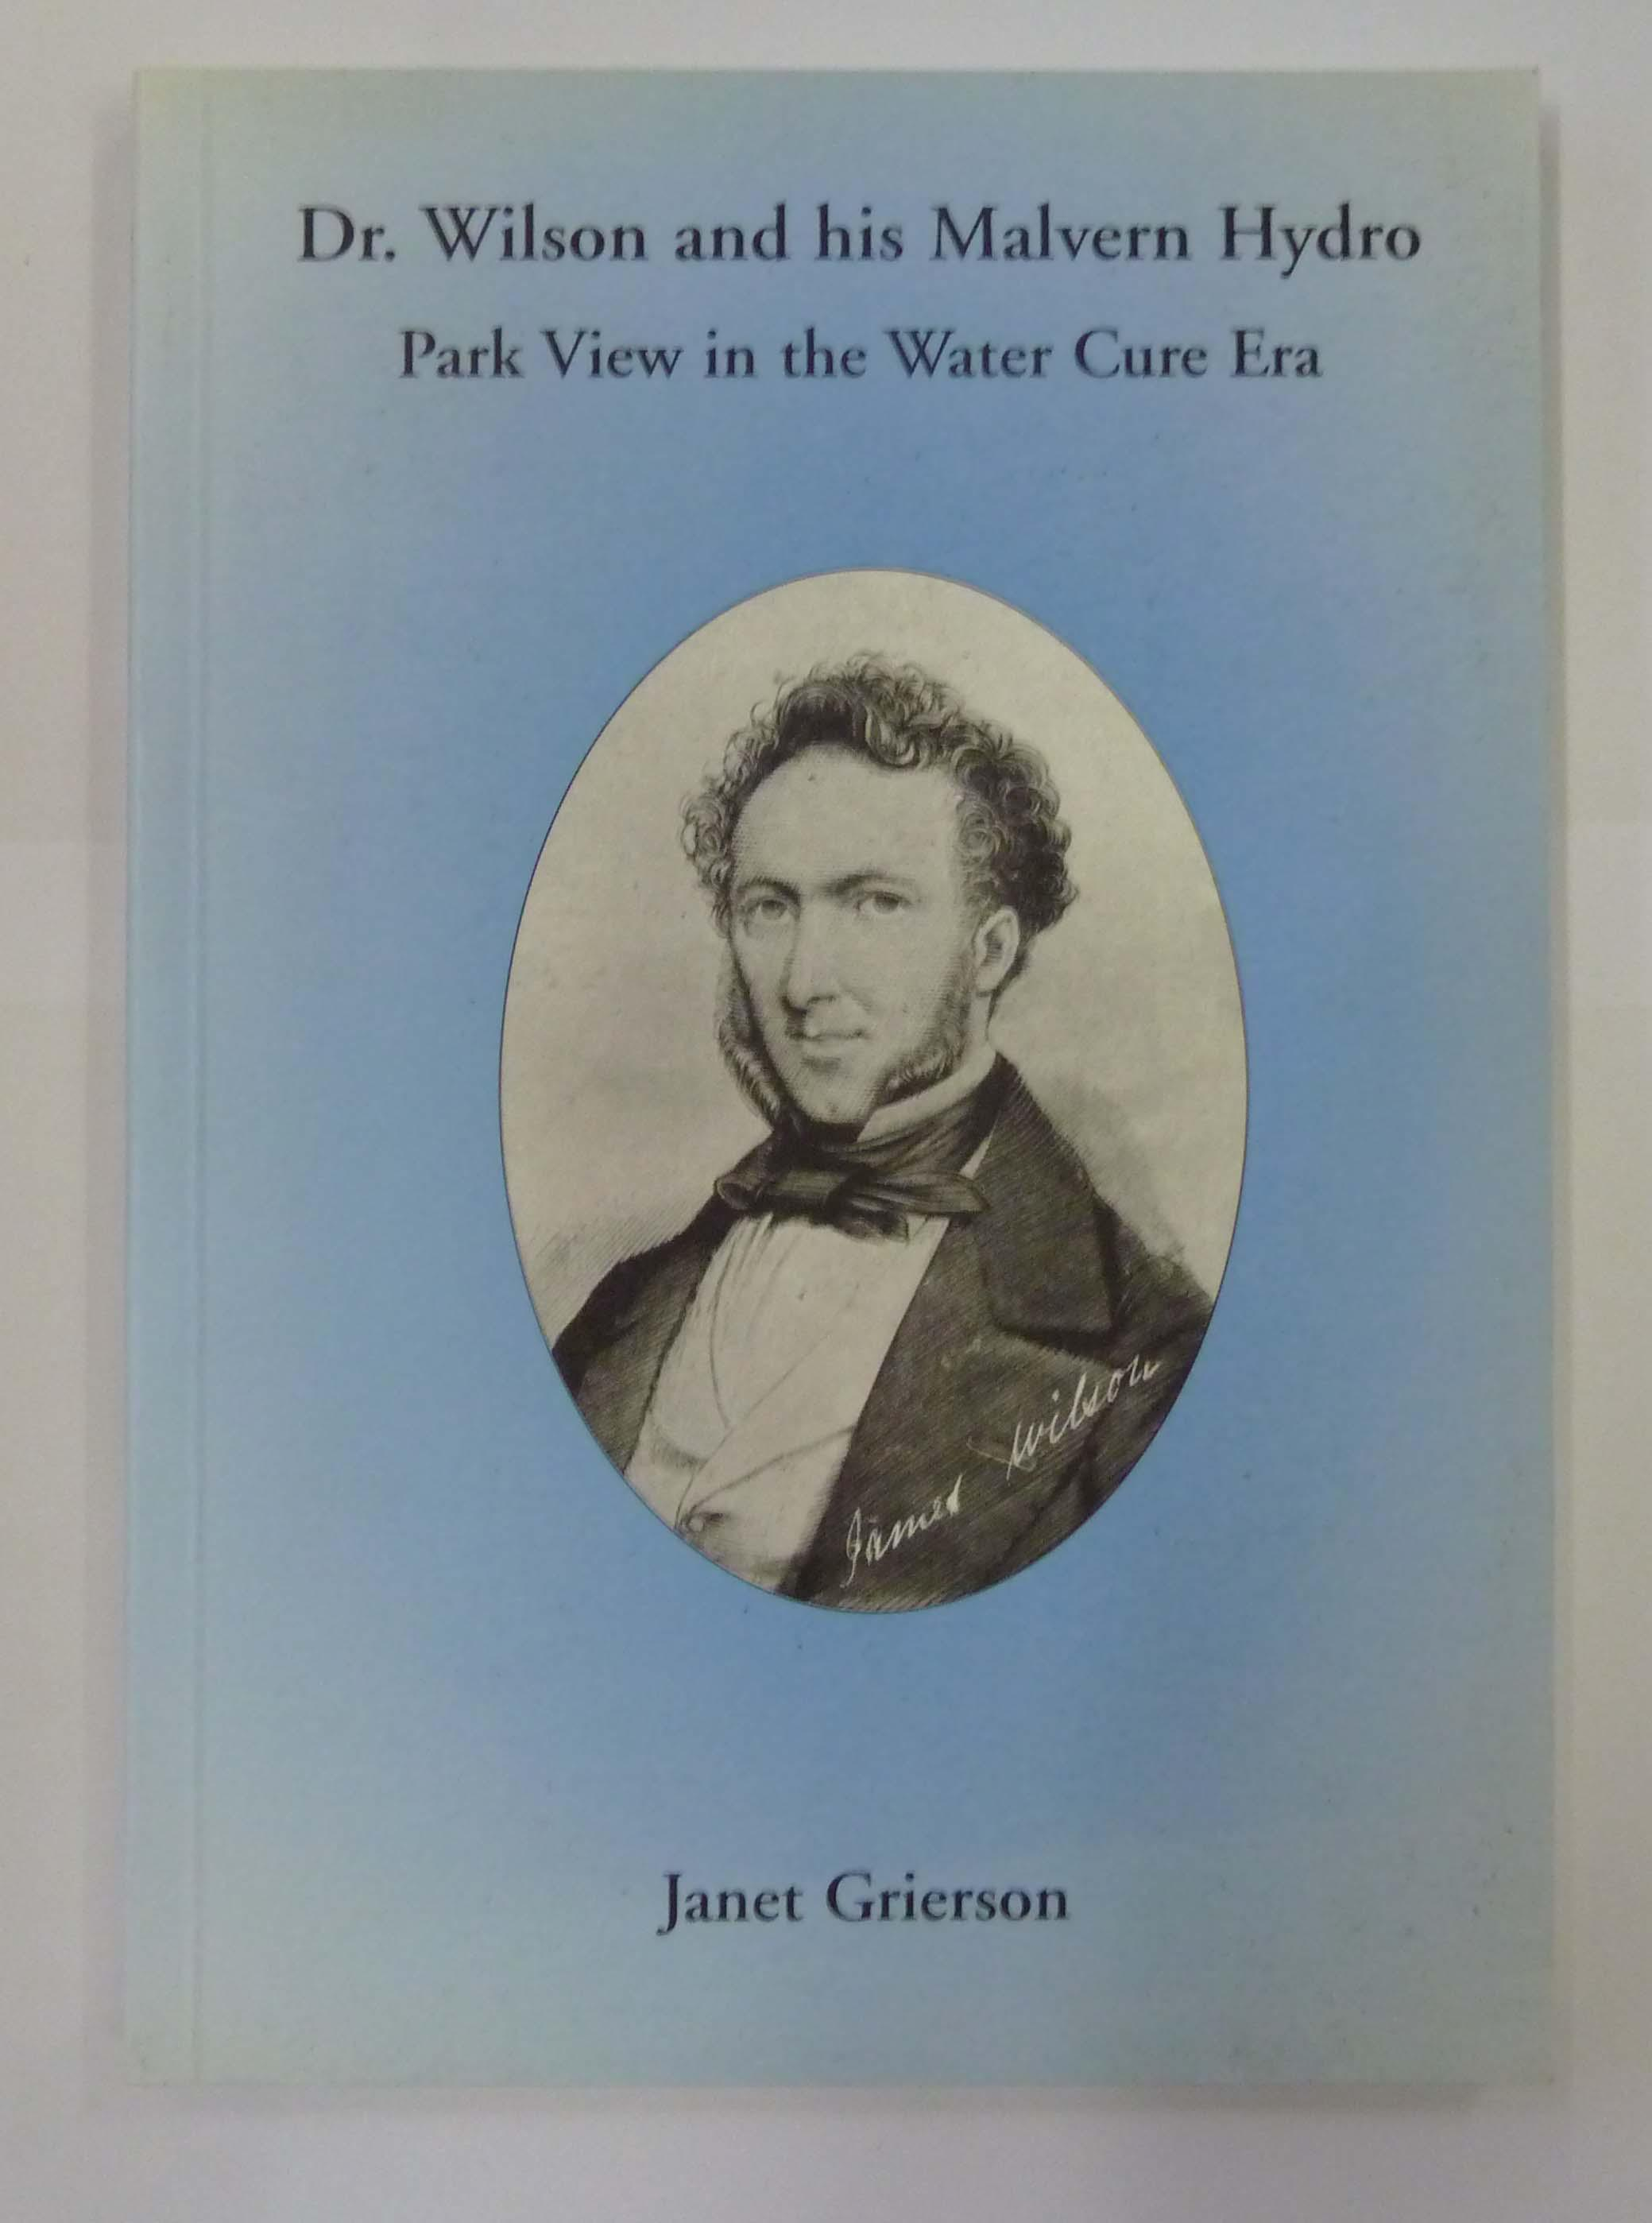 Dr Wilson and his Malvern Hydro Park View in the Water Cure Era